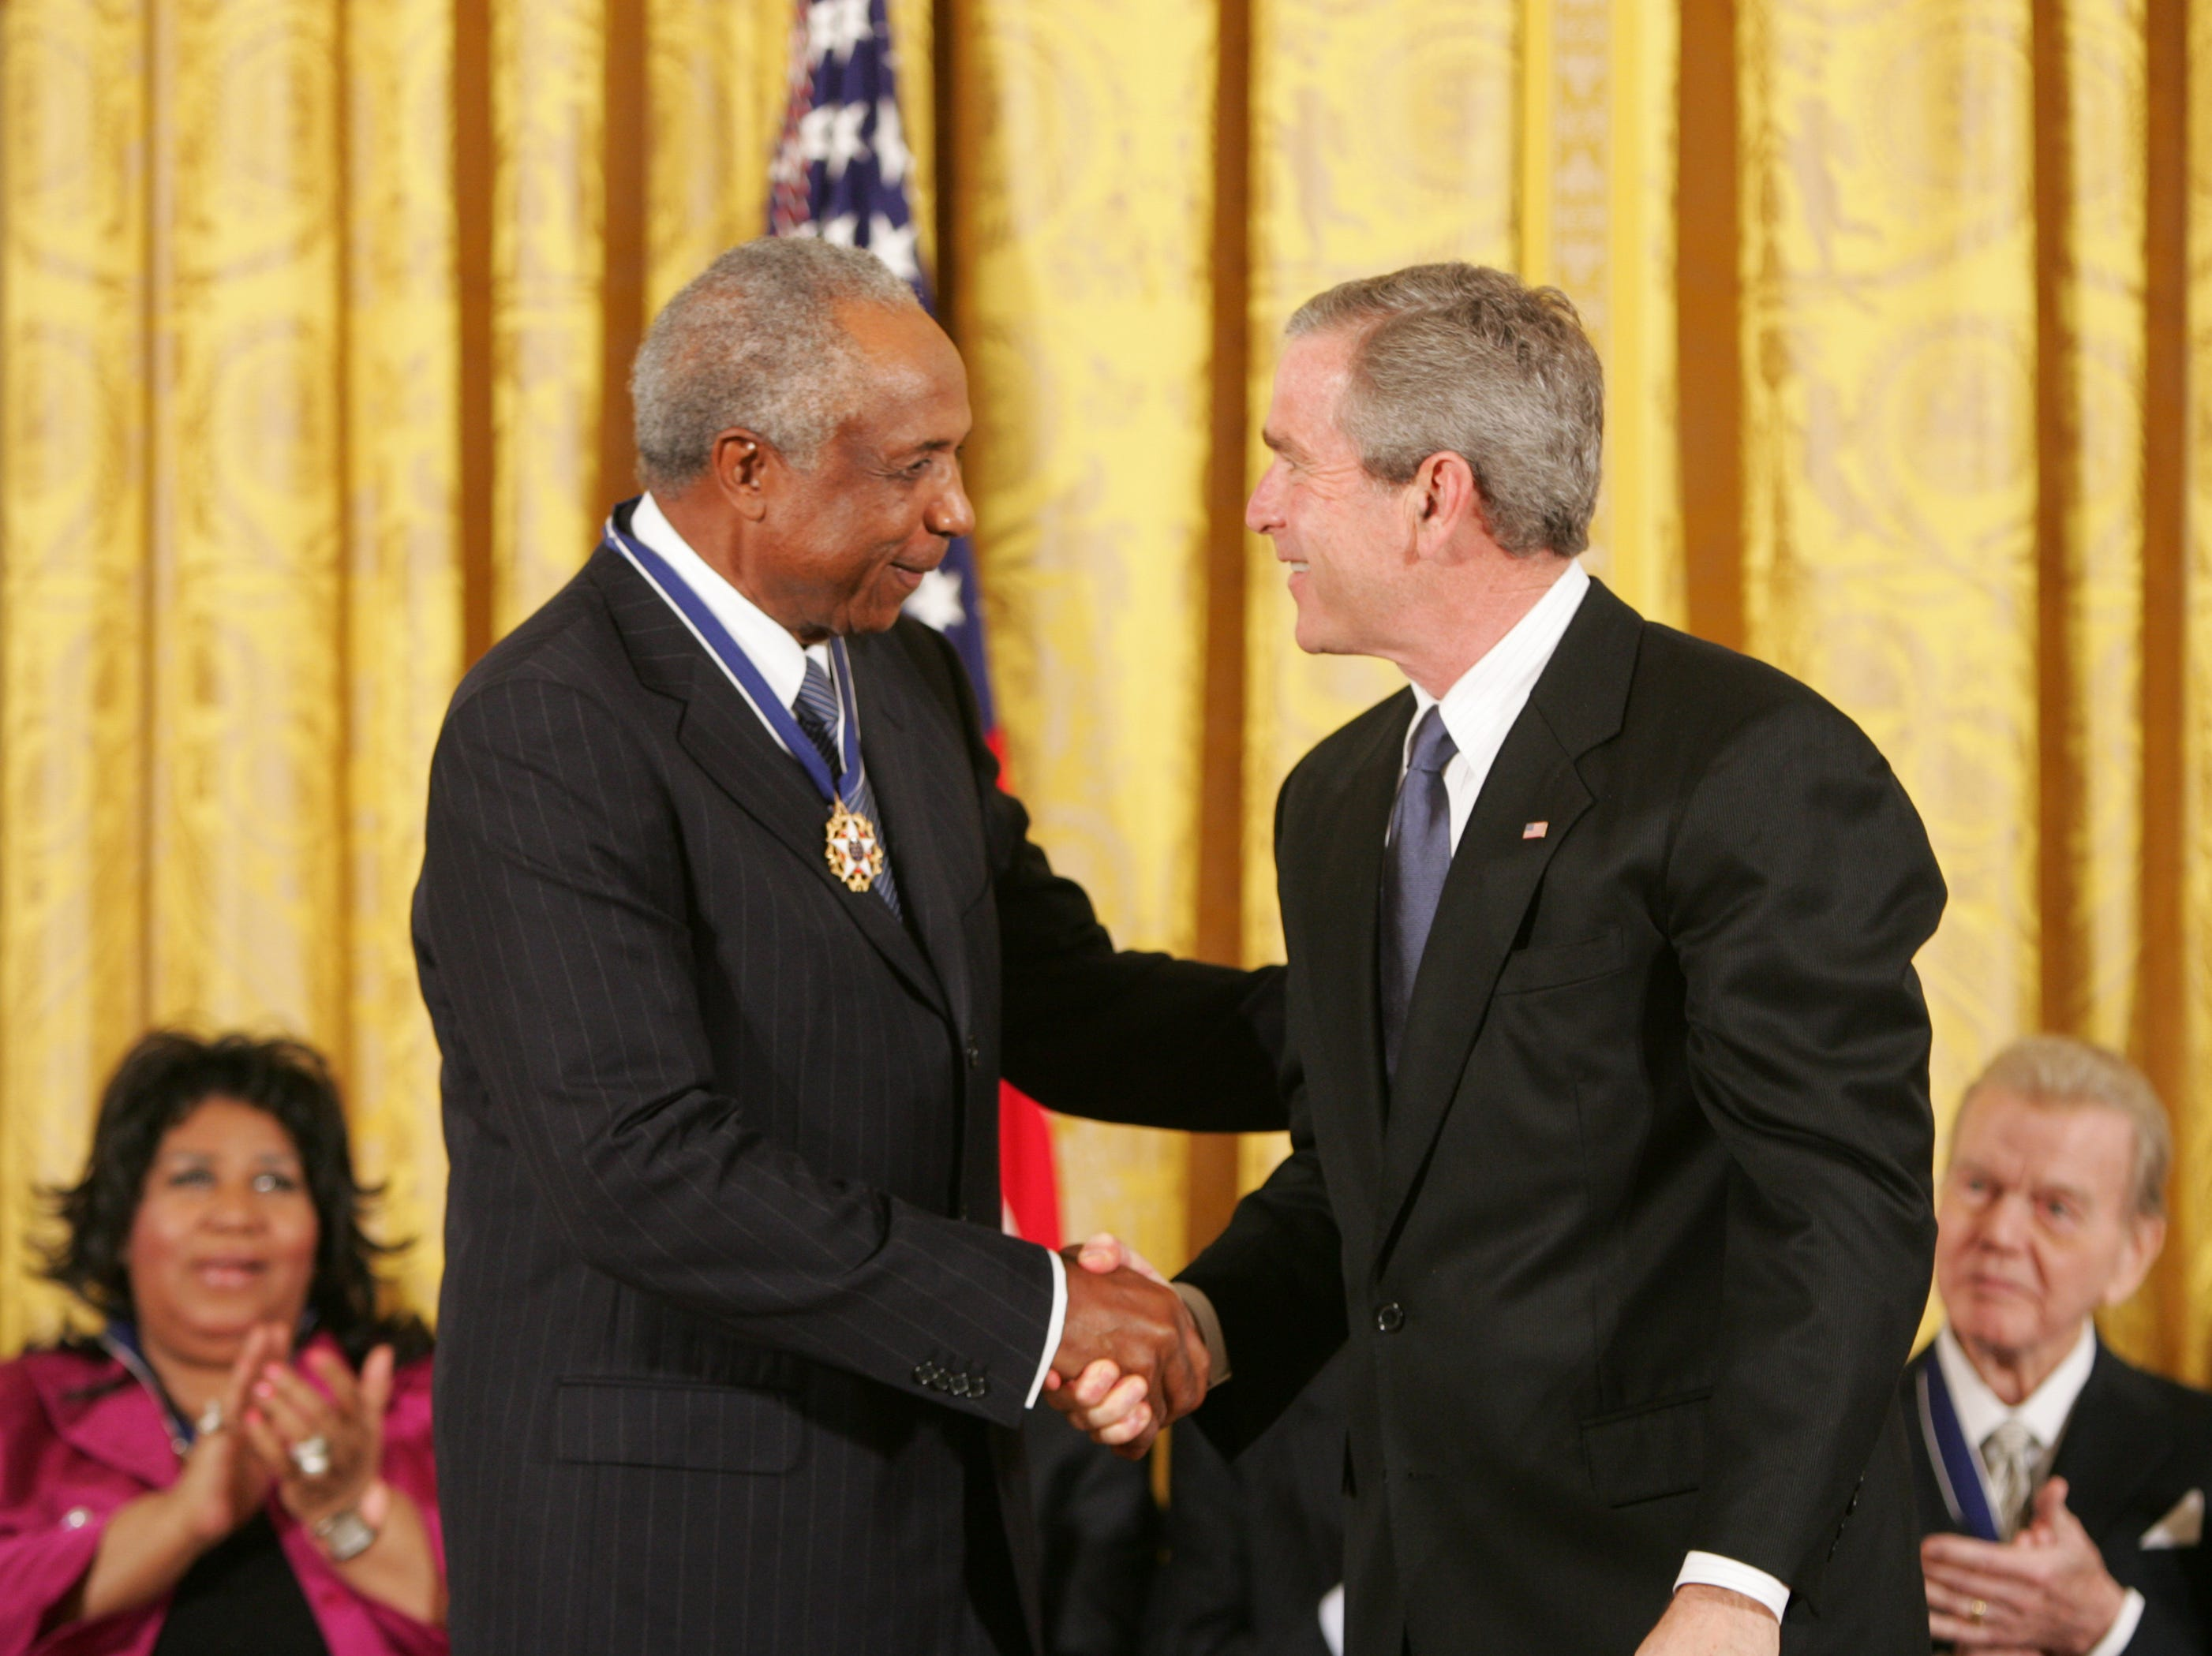 President George W. Bush presents the Presidential Medal of Freedom to baseball legend Frank Robinson in the East Room Wednesday, Nov. 9, 2005. Winning the Most Valuable Player awards in the National and American Leagues, he achieved the American League Triple Crown in 1966. Mr. Robinson became baseball's first African-American manager.